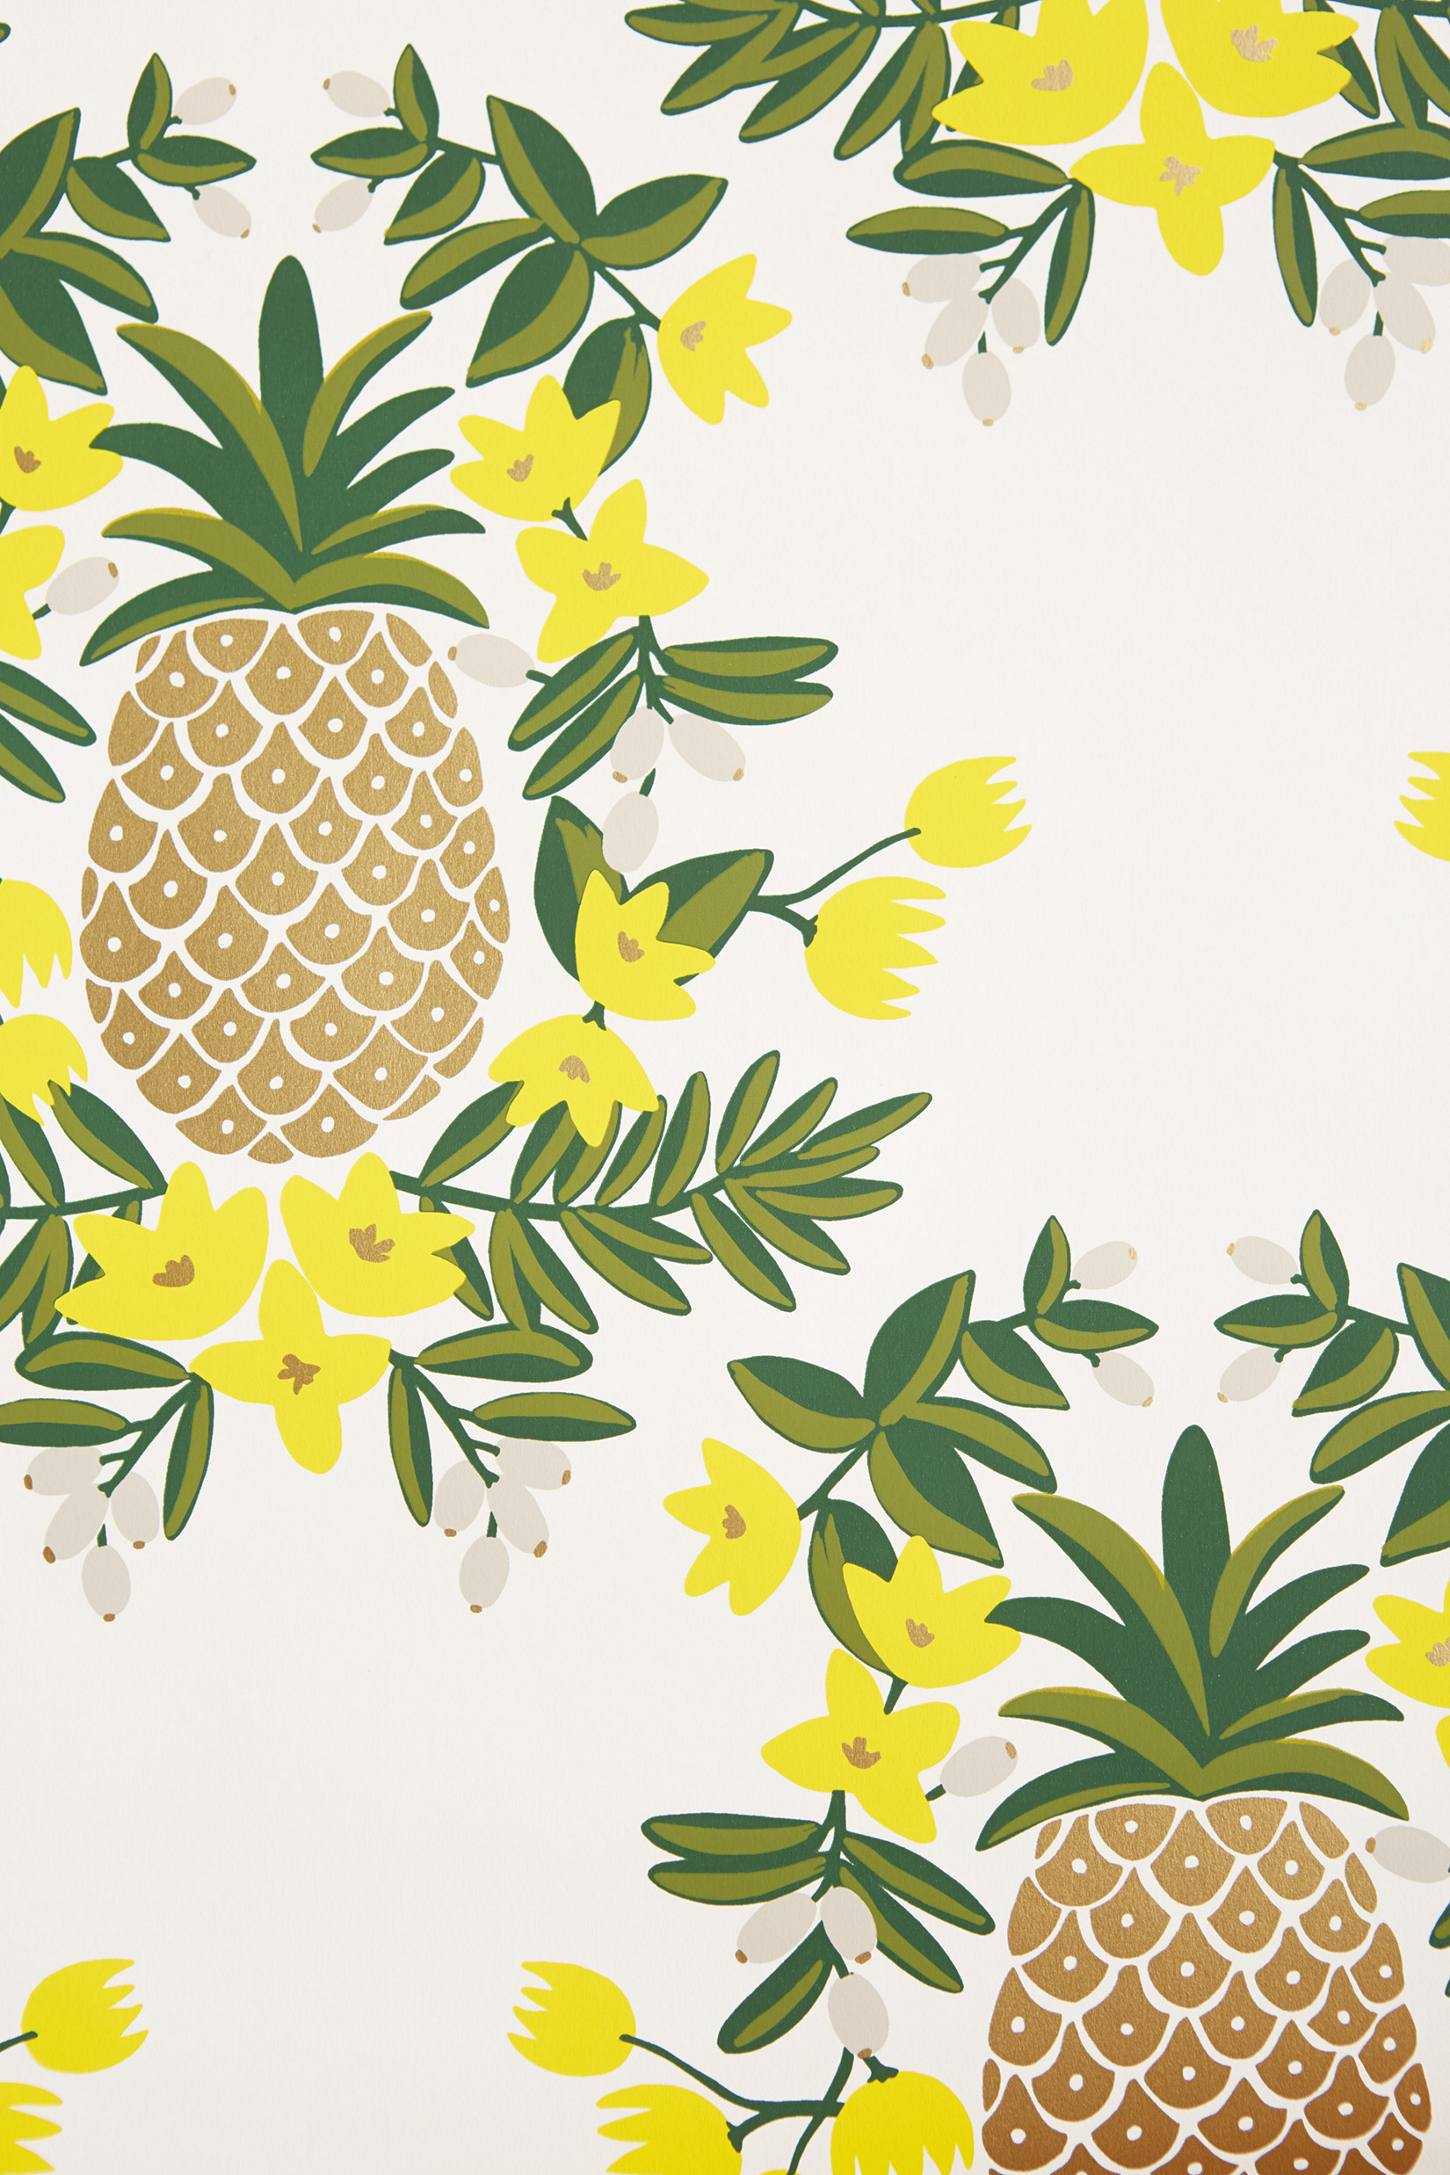 Pineapple Welcome Wallpaper | Anthropologie